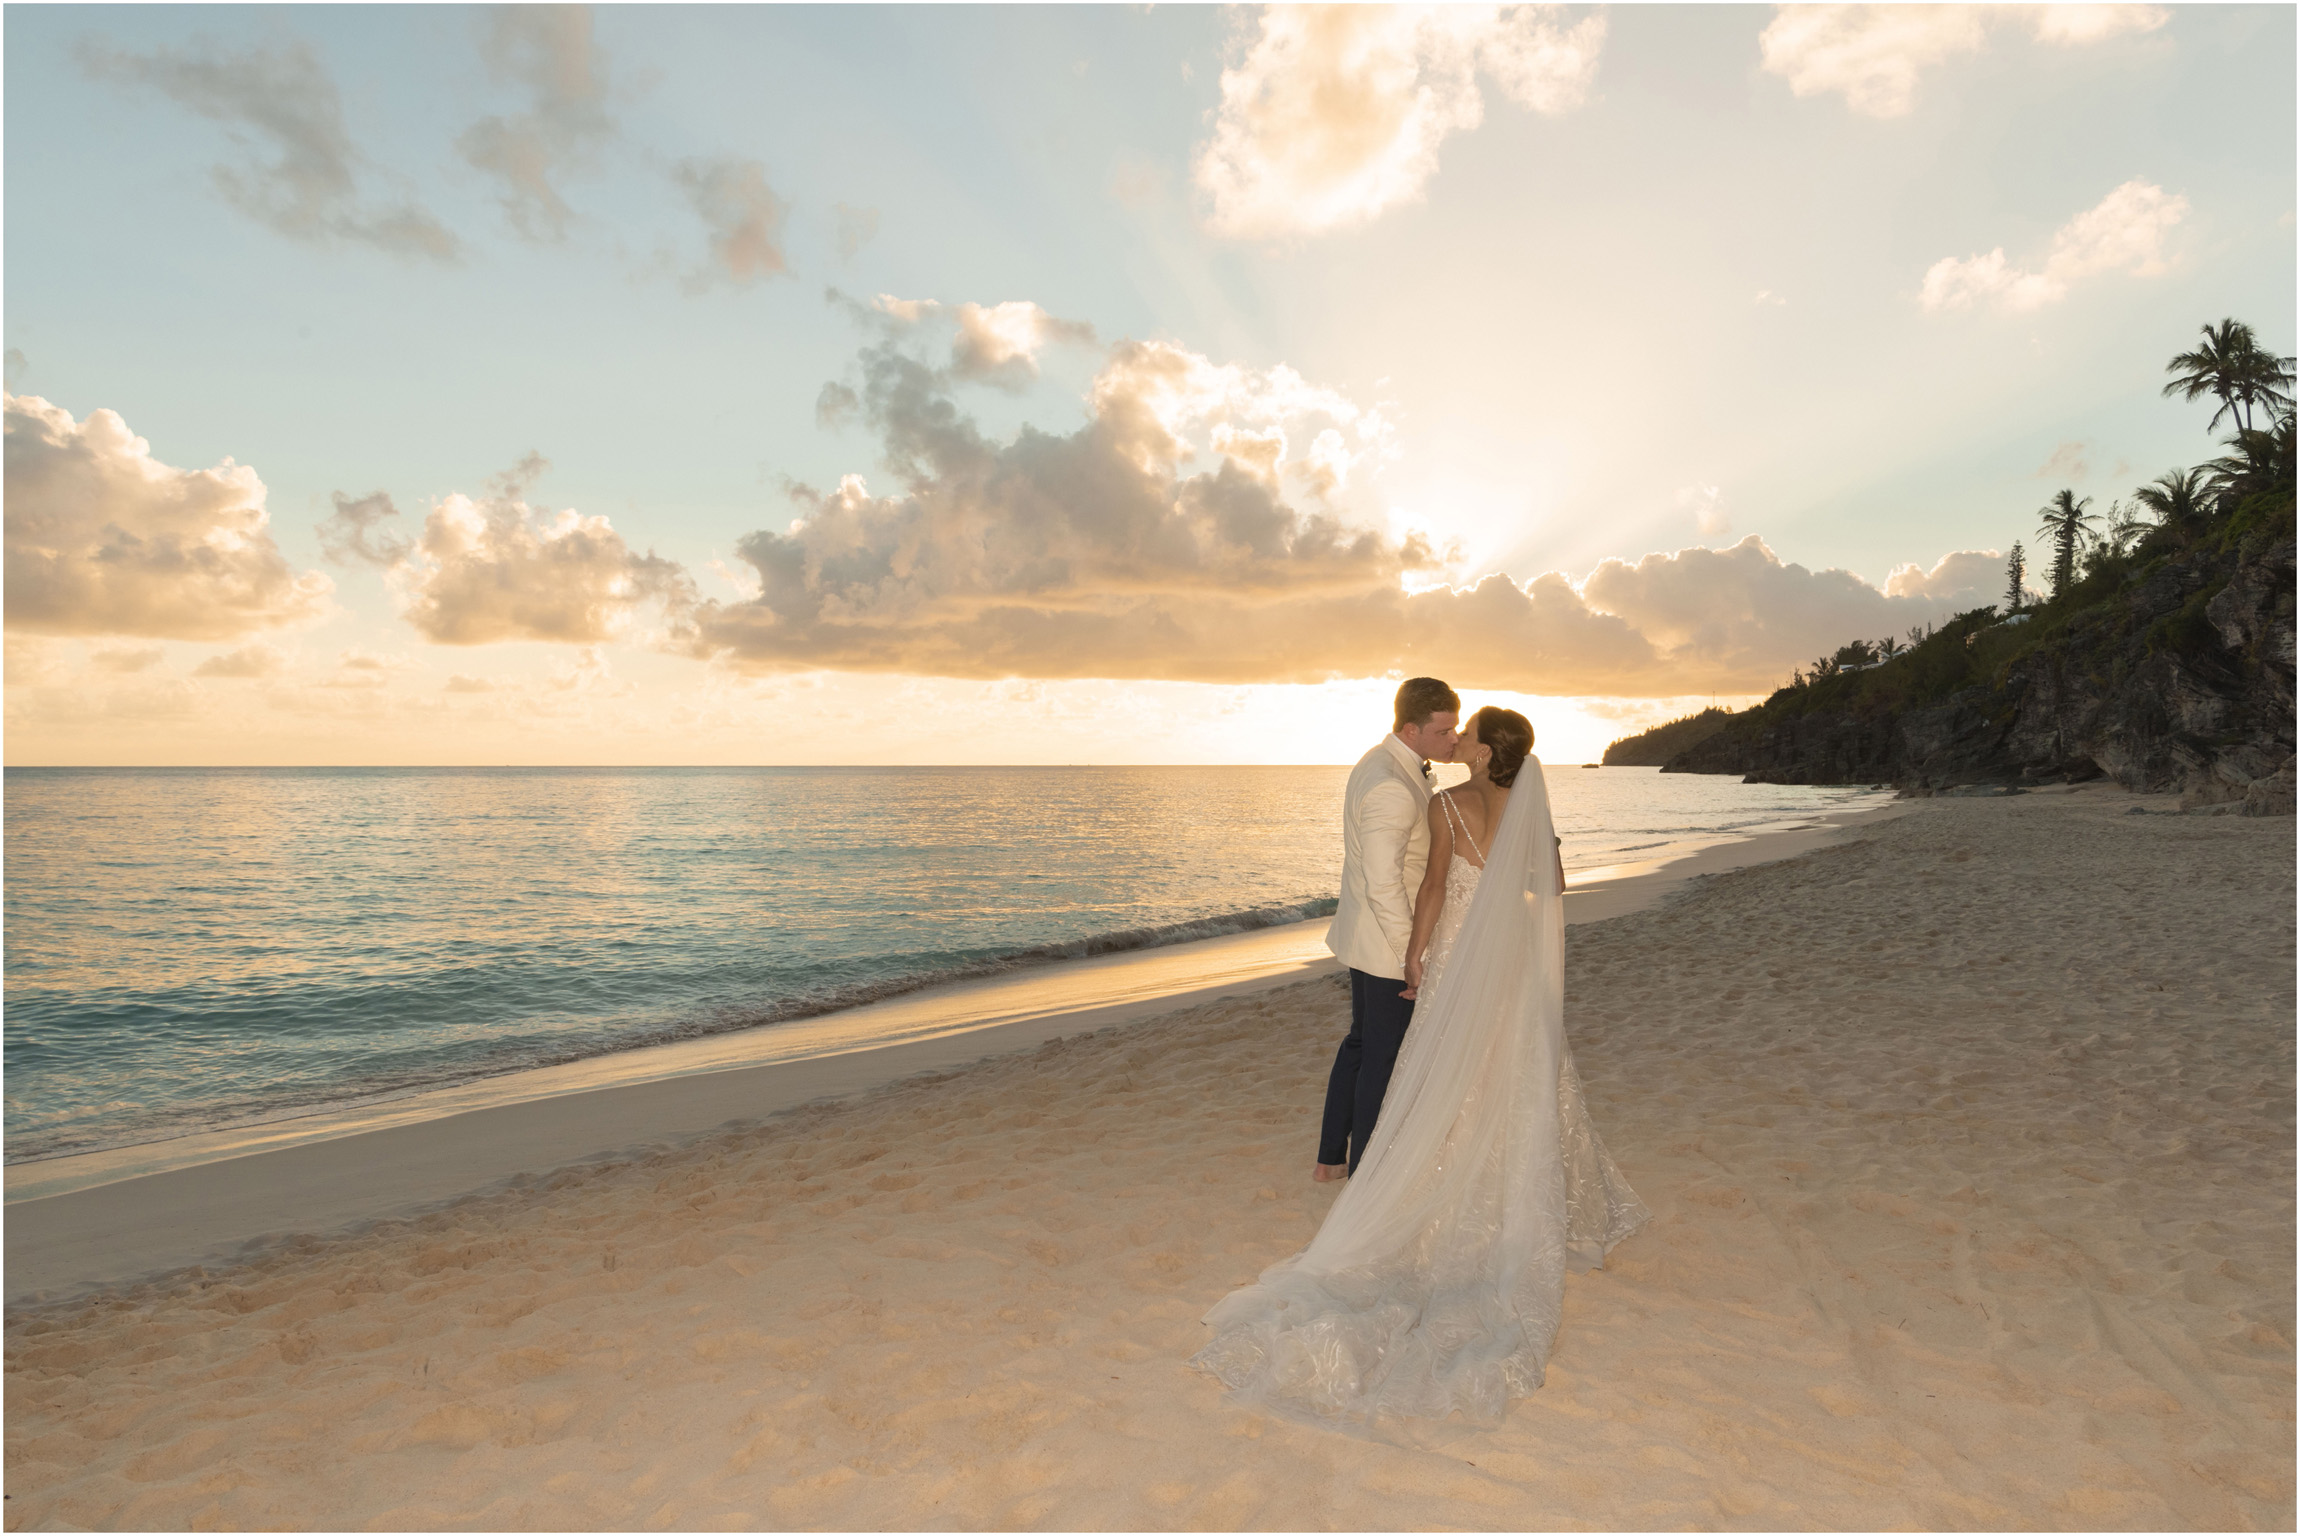 ©Fiander+Foto_Bermuda+Wedding+Photographer_The+Reefs_Taylor_Tedd_131.jpg